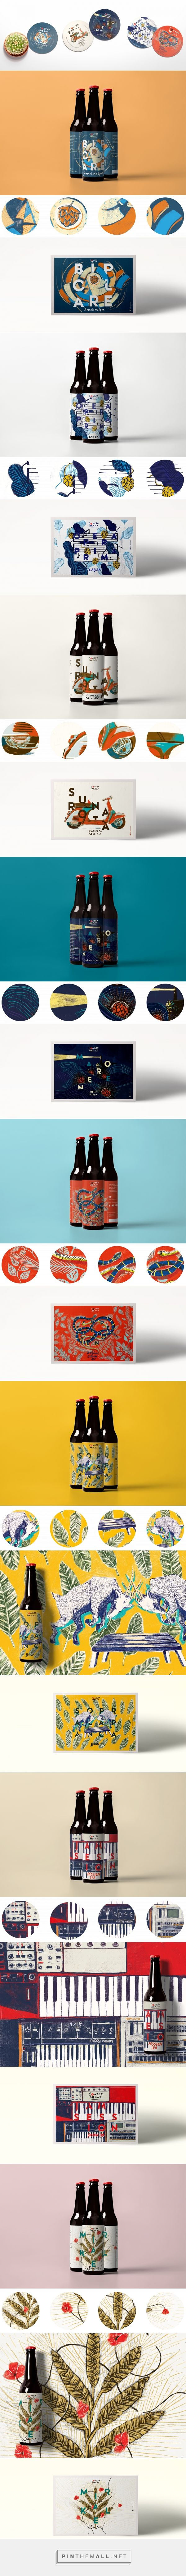 Contromano Beer Branding and Packaging by Kero